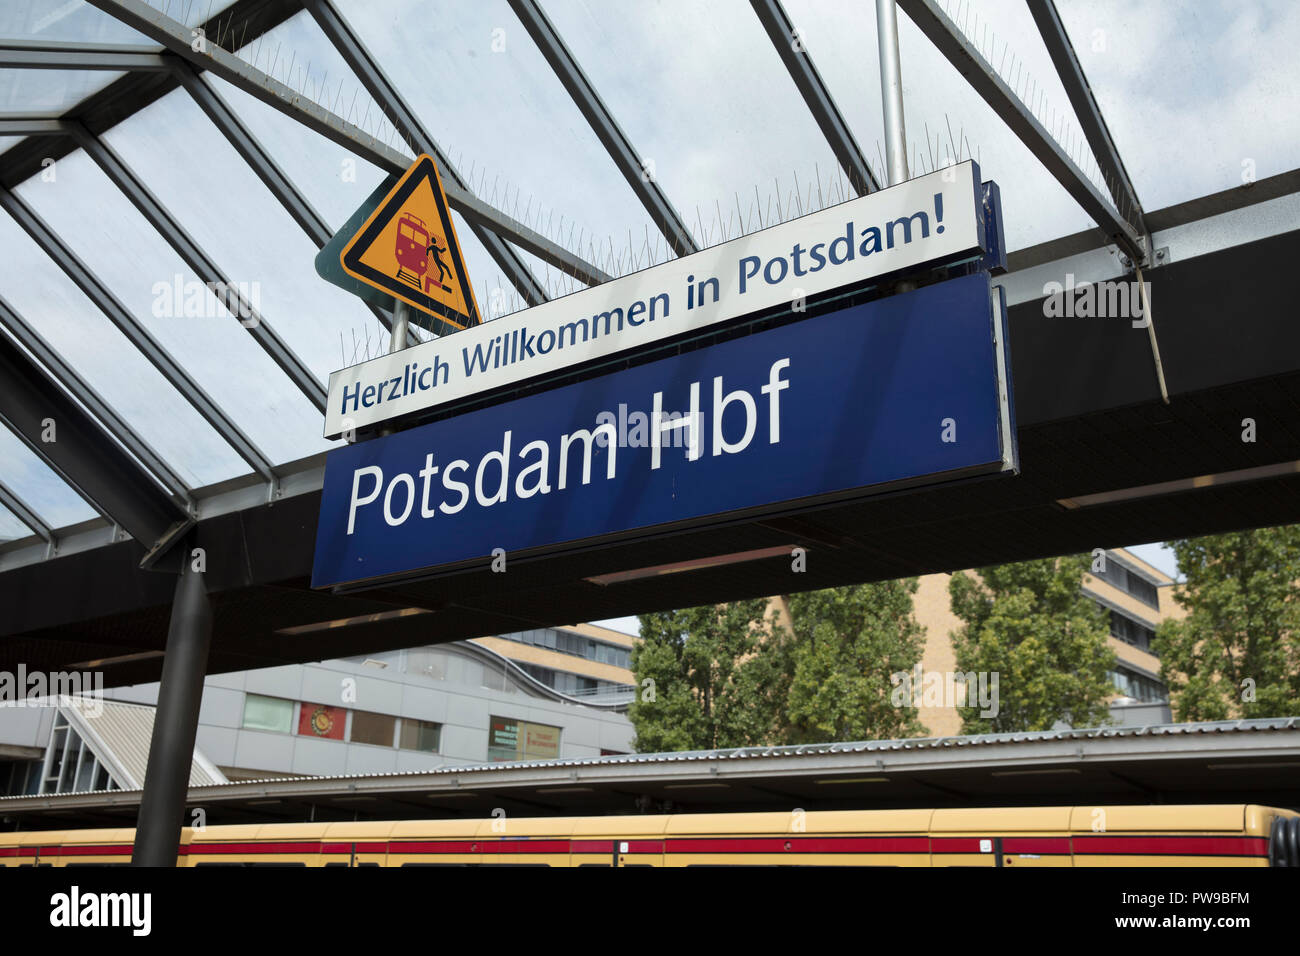 Potsdam, Berlin, Germany: 18th August 2018: Railway Station Sign Stock Photo